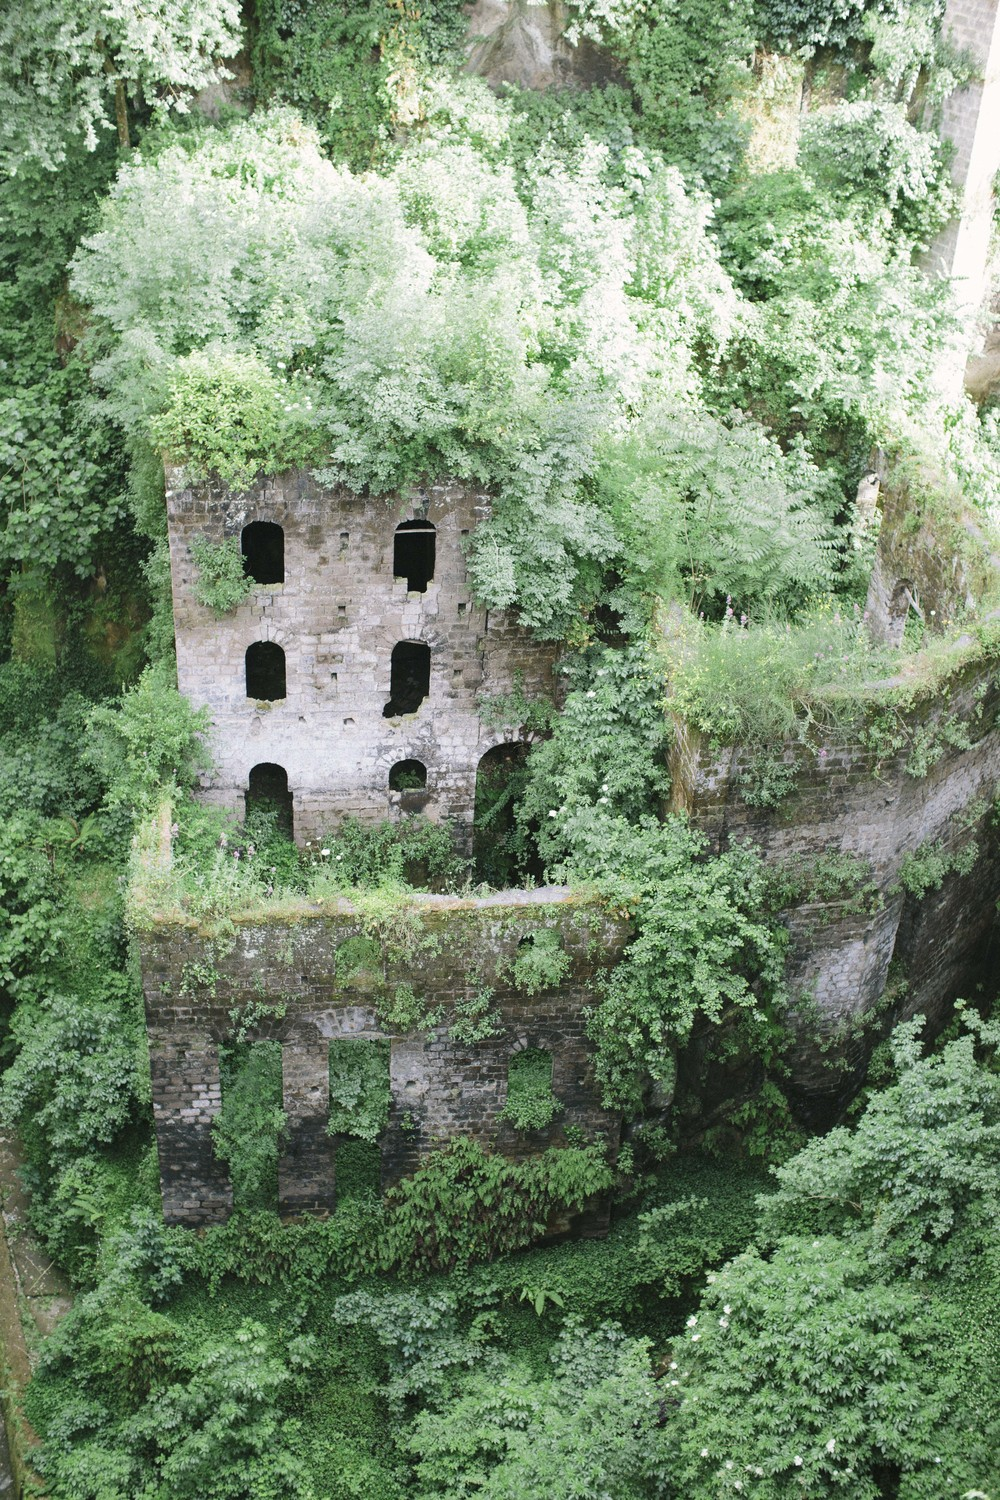 This is ancient Sorrento visible from the street above.